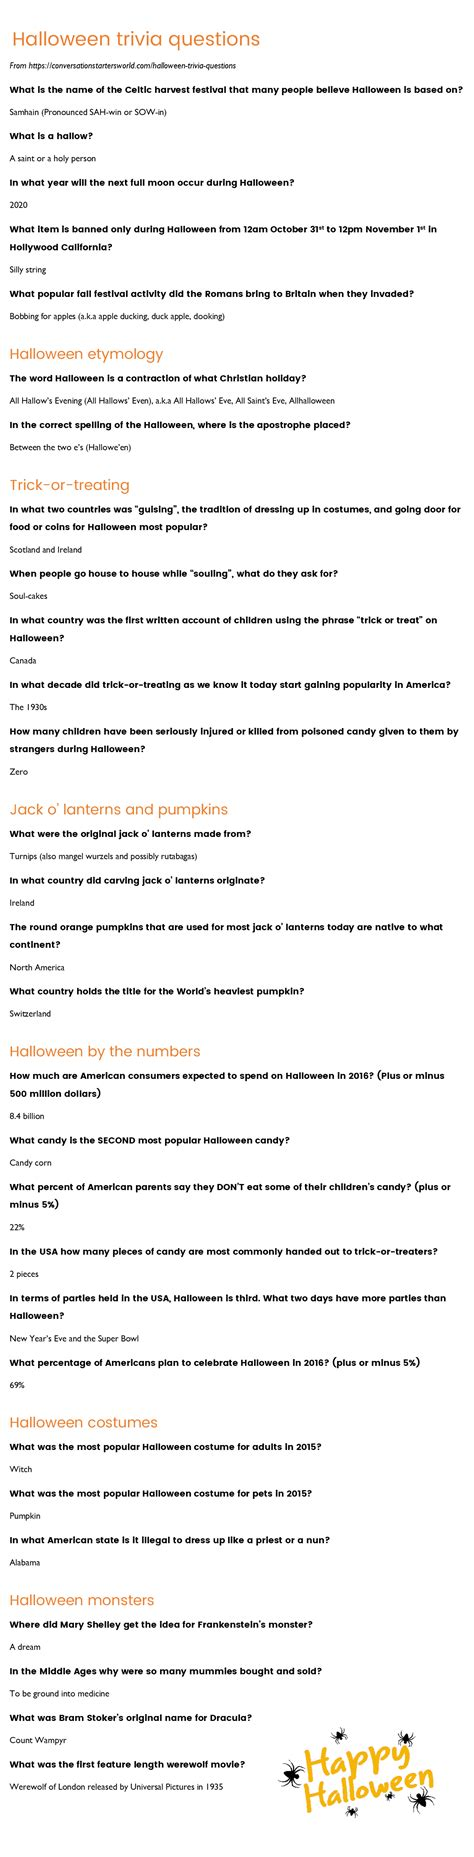 quiz questions list 29 challenging halloween trivia questions how many can